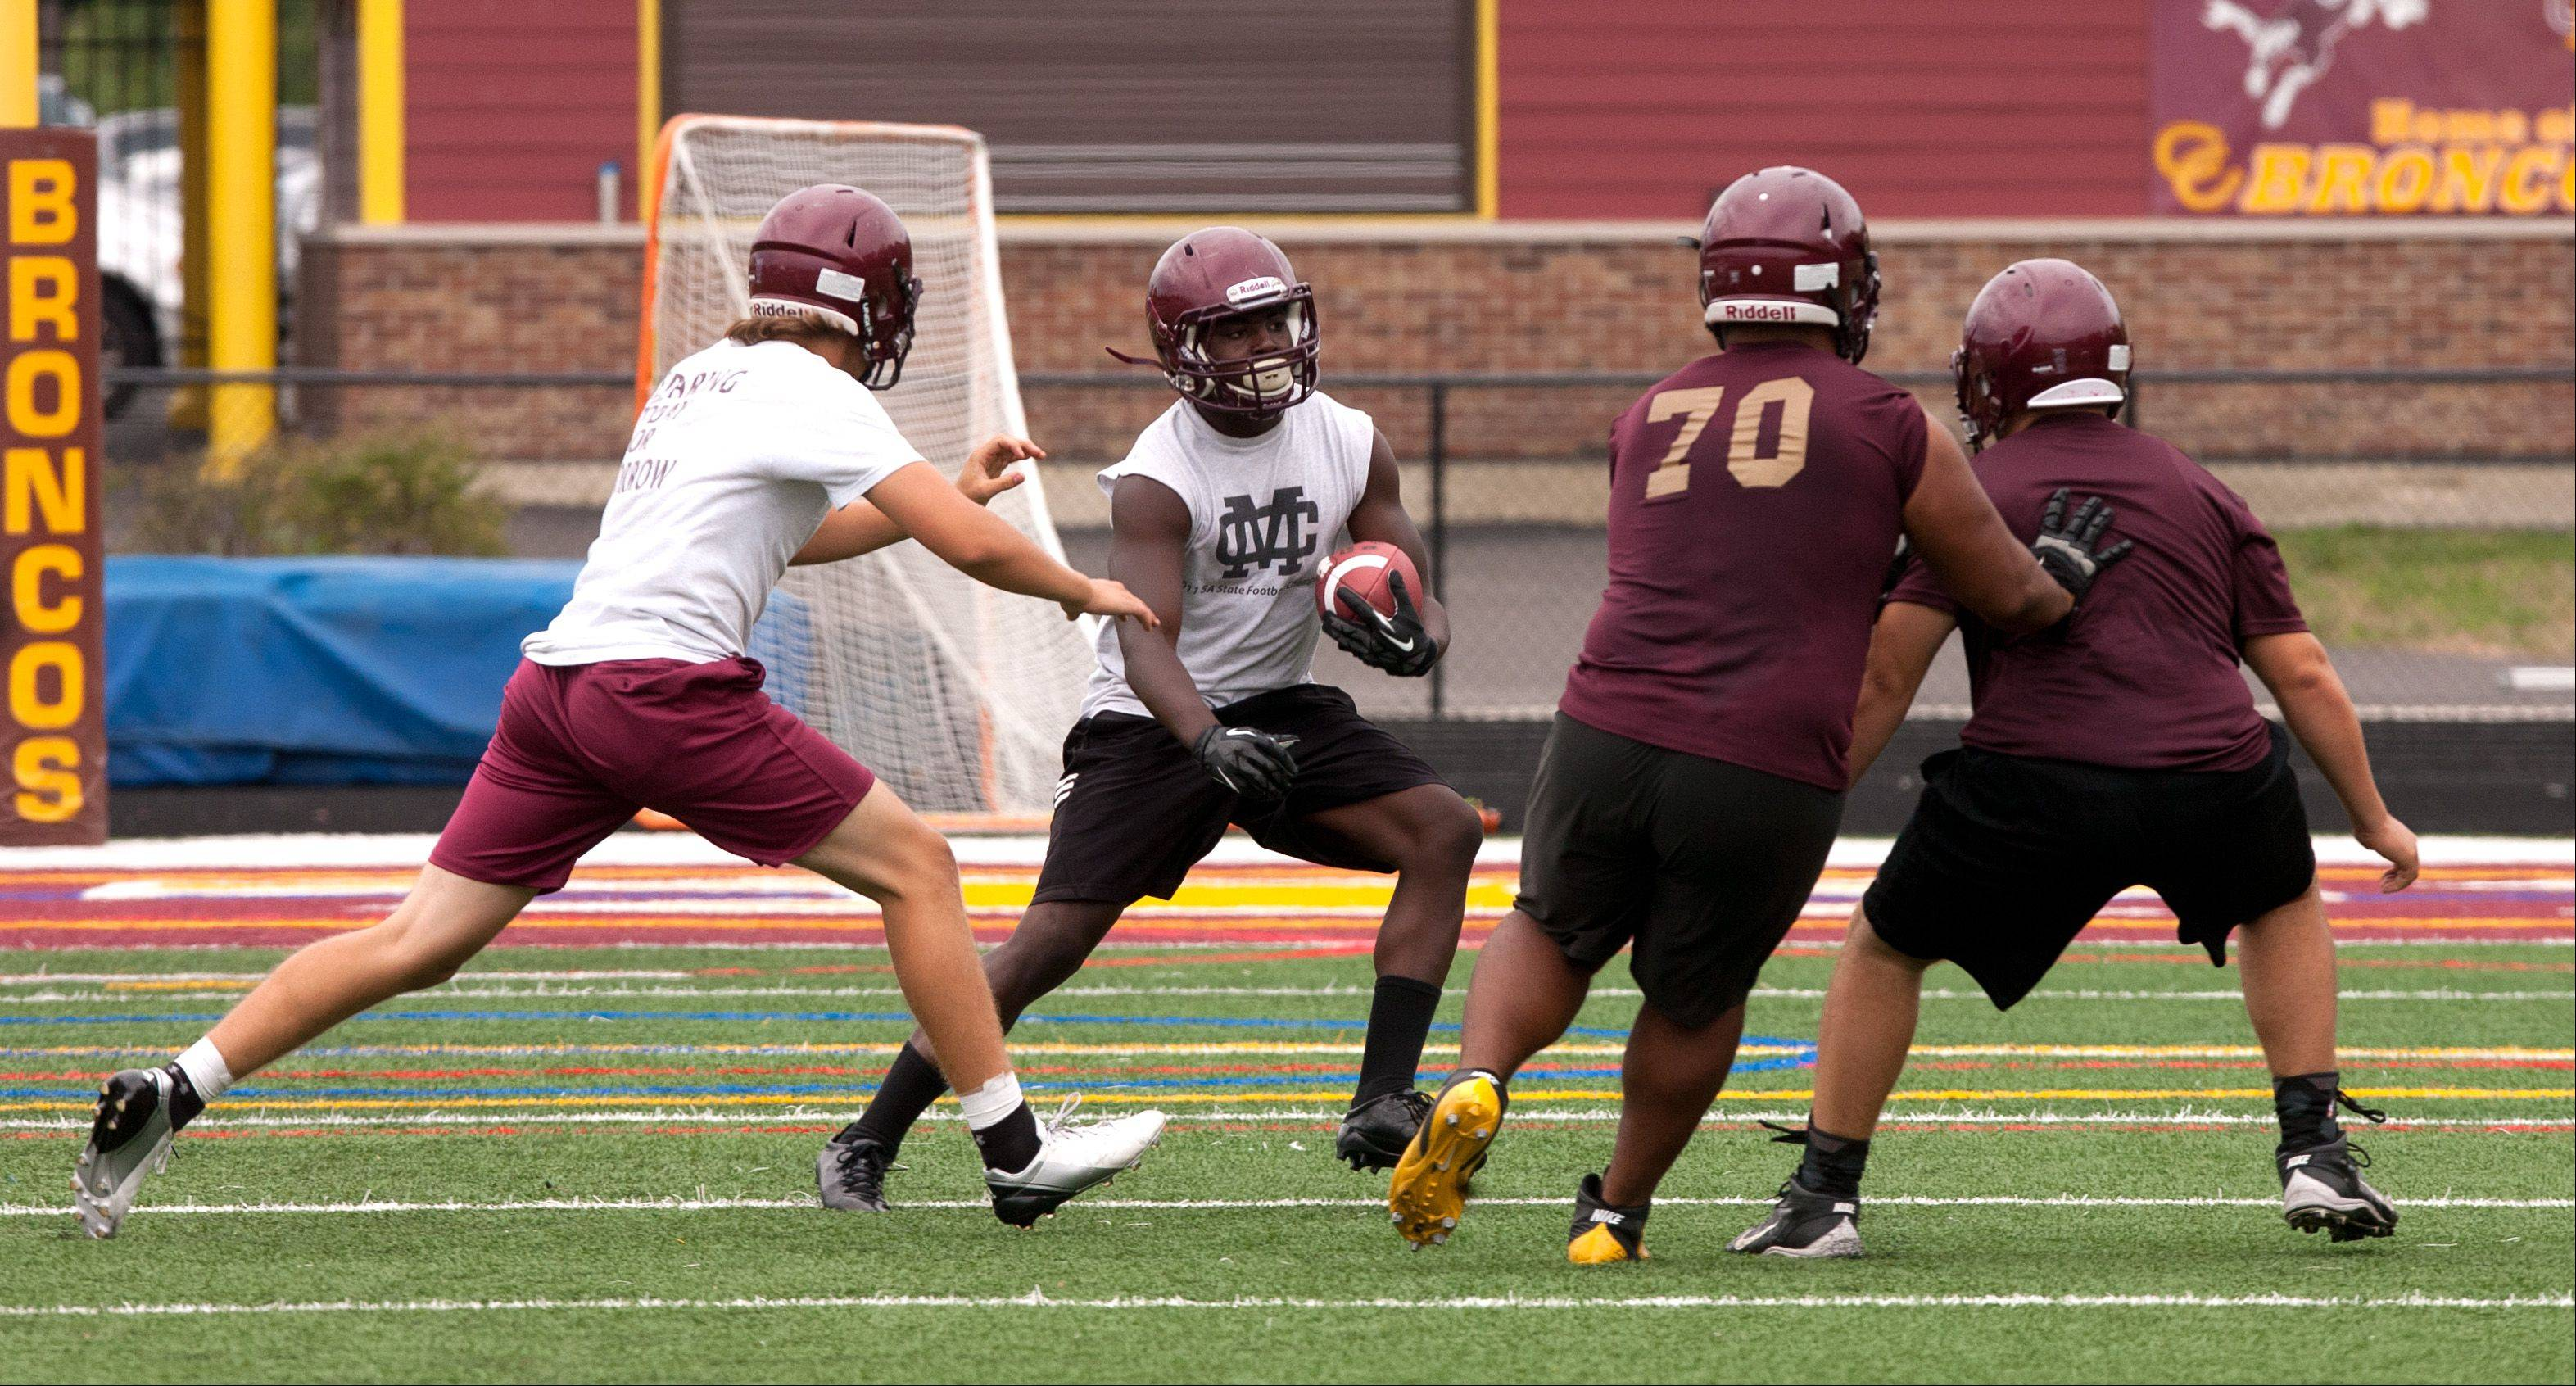 Montini Catholic's Dimitri Taylor practices during a punt drill.